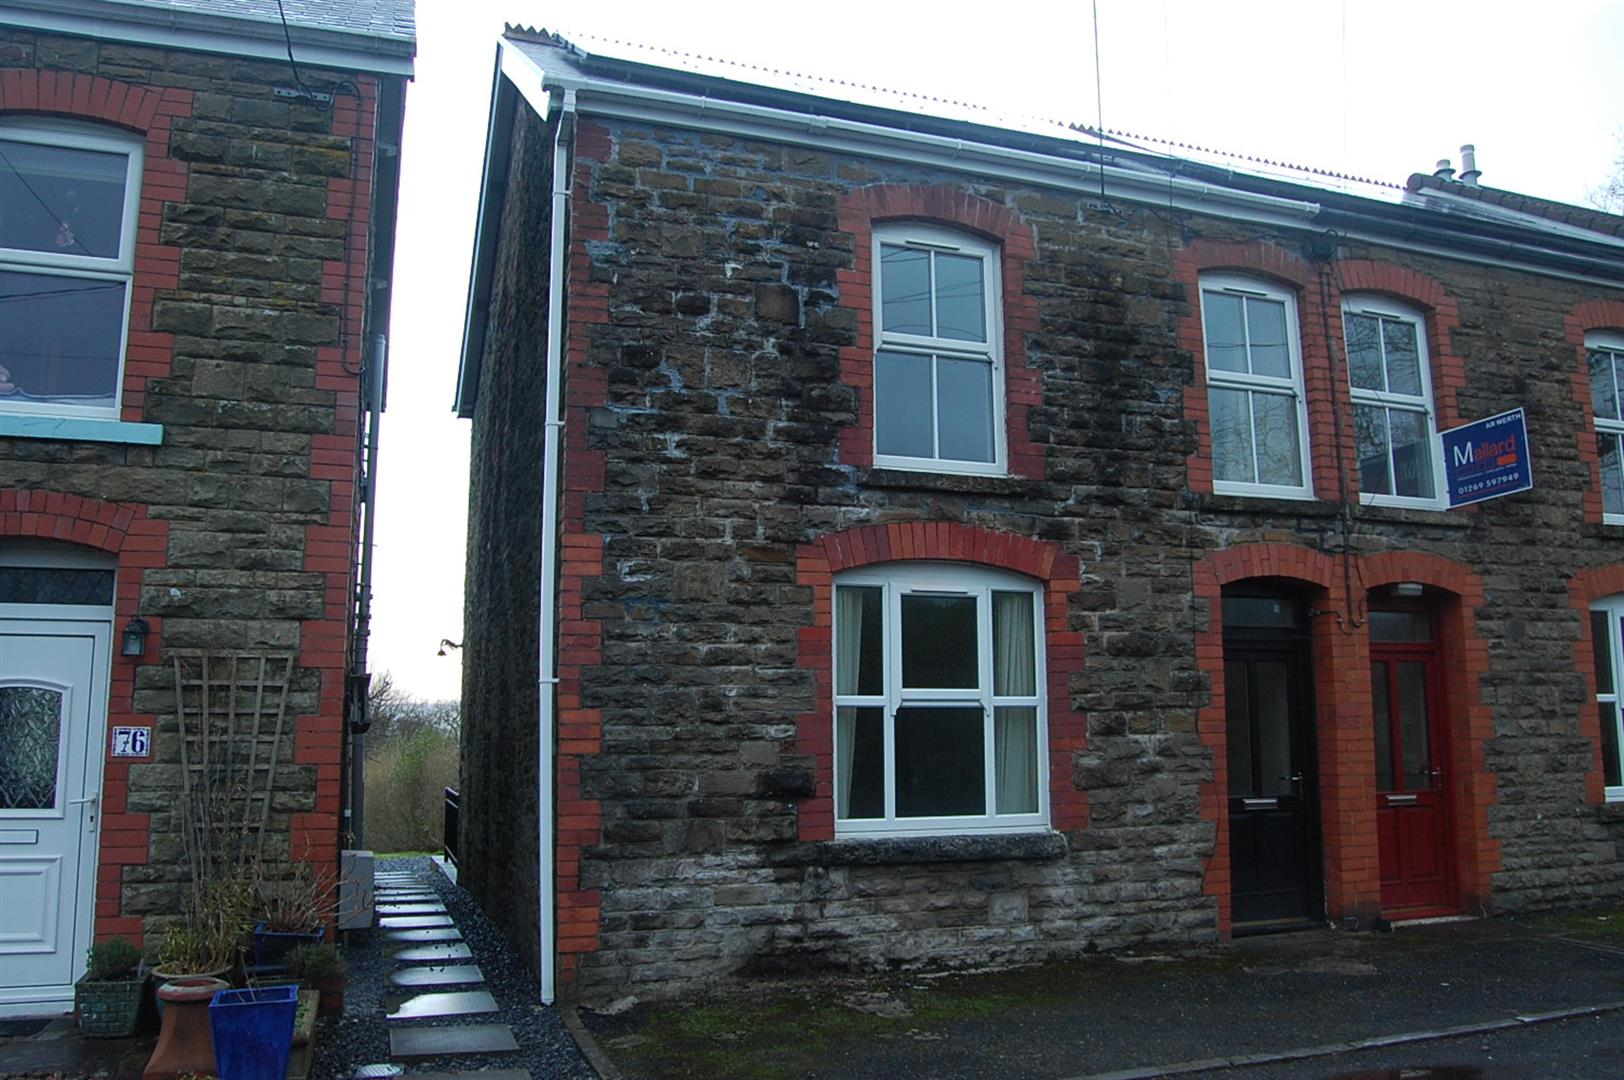 78 Colonel Road, Betws, Ammanford